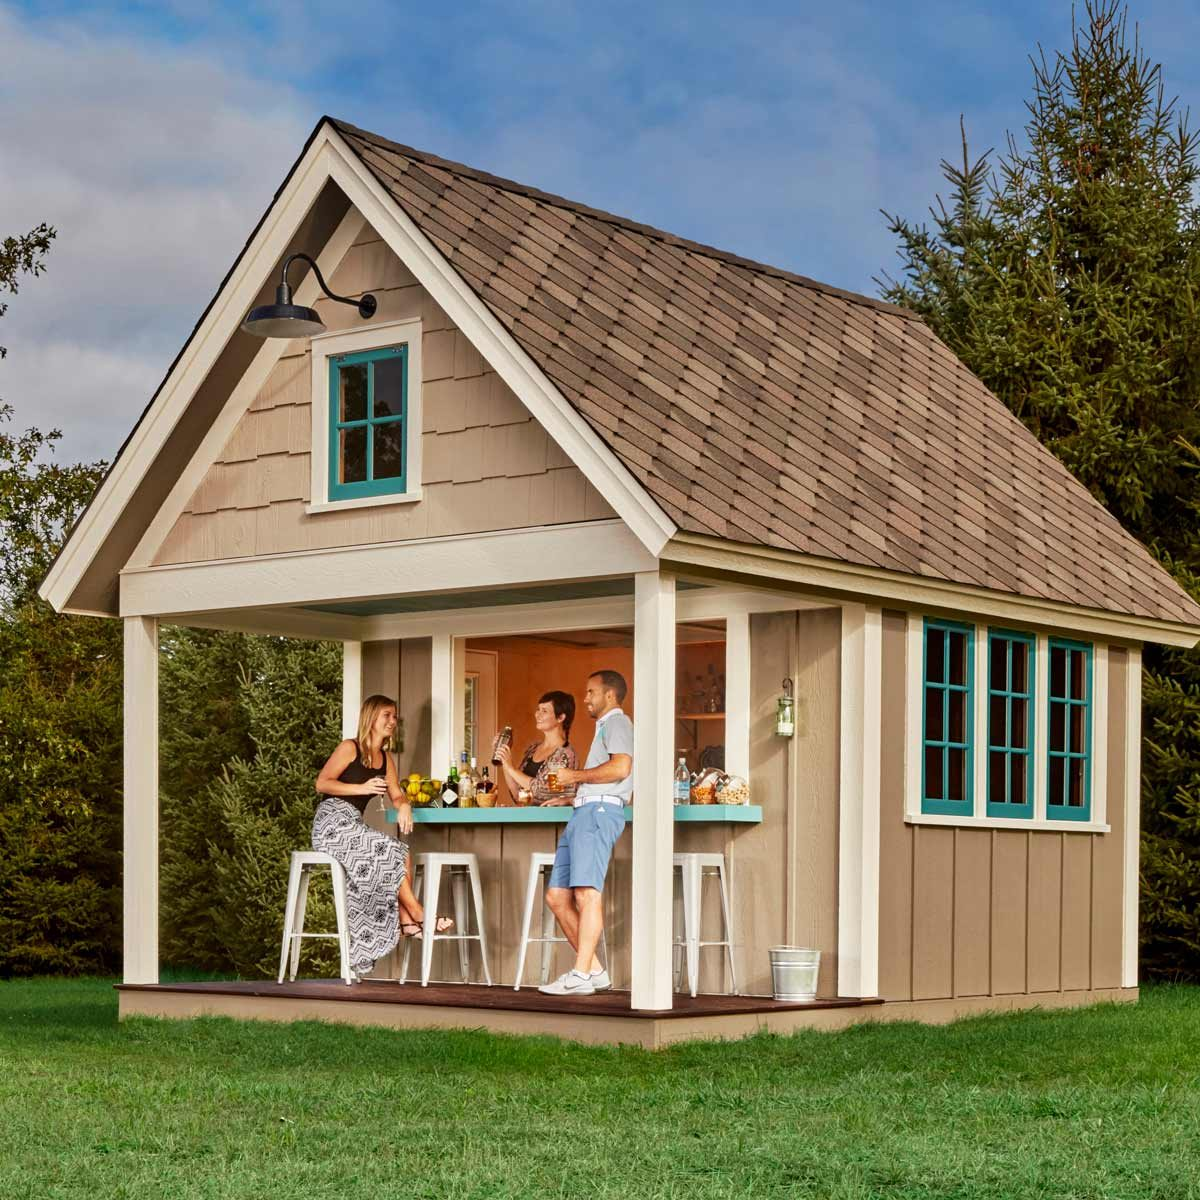 Family handyman garden tool shed garden ftempo for Family handyman phone number